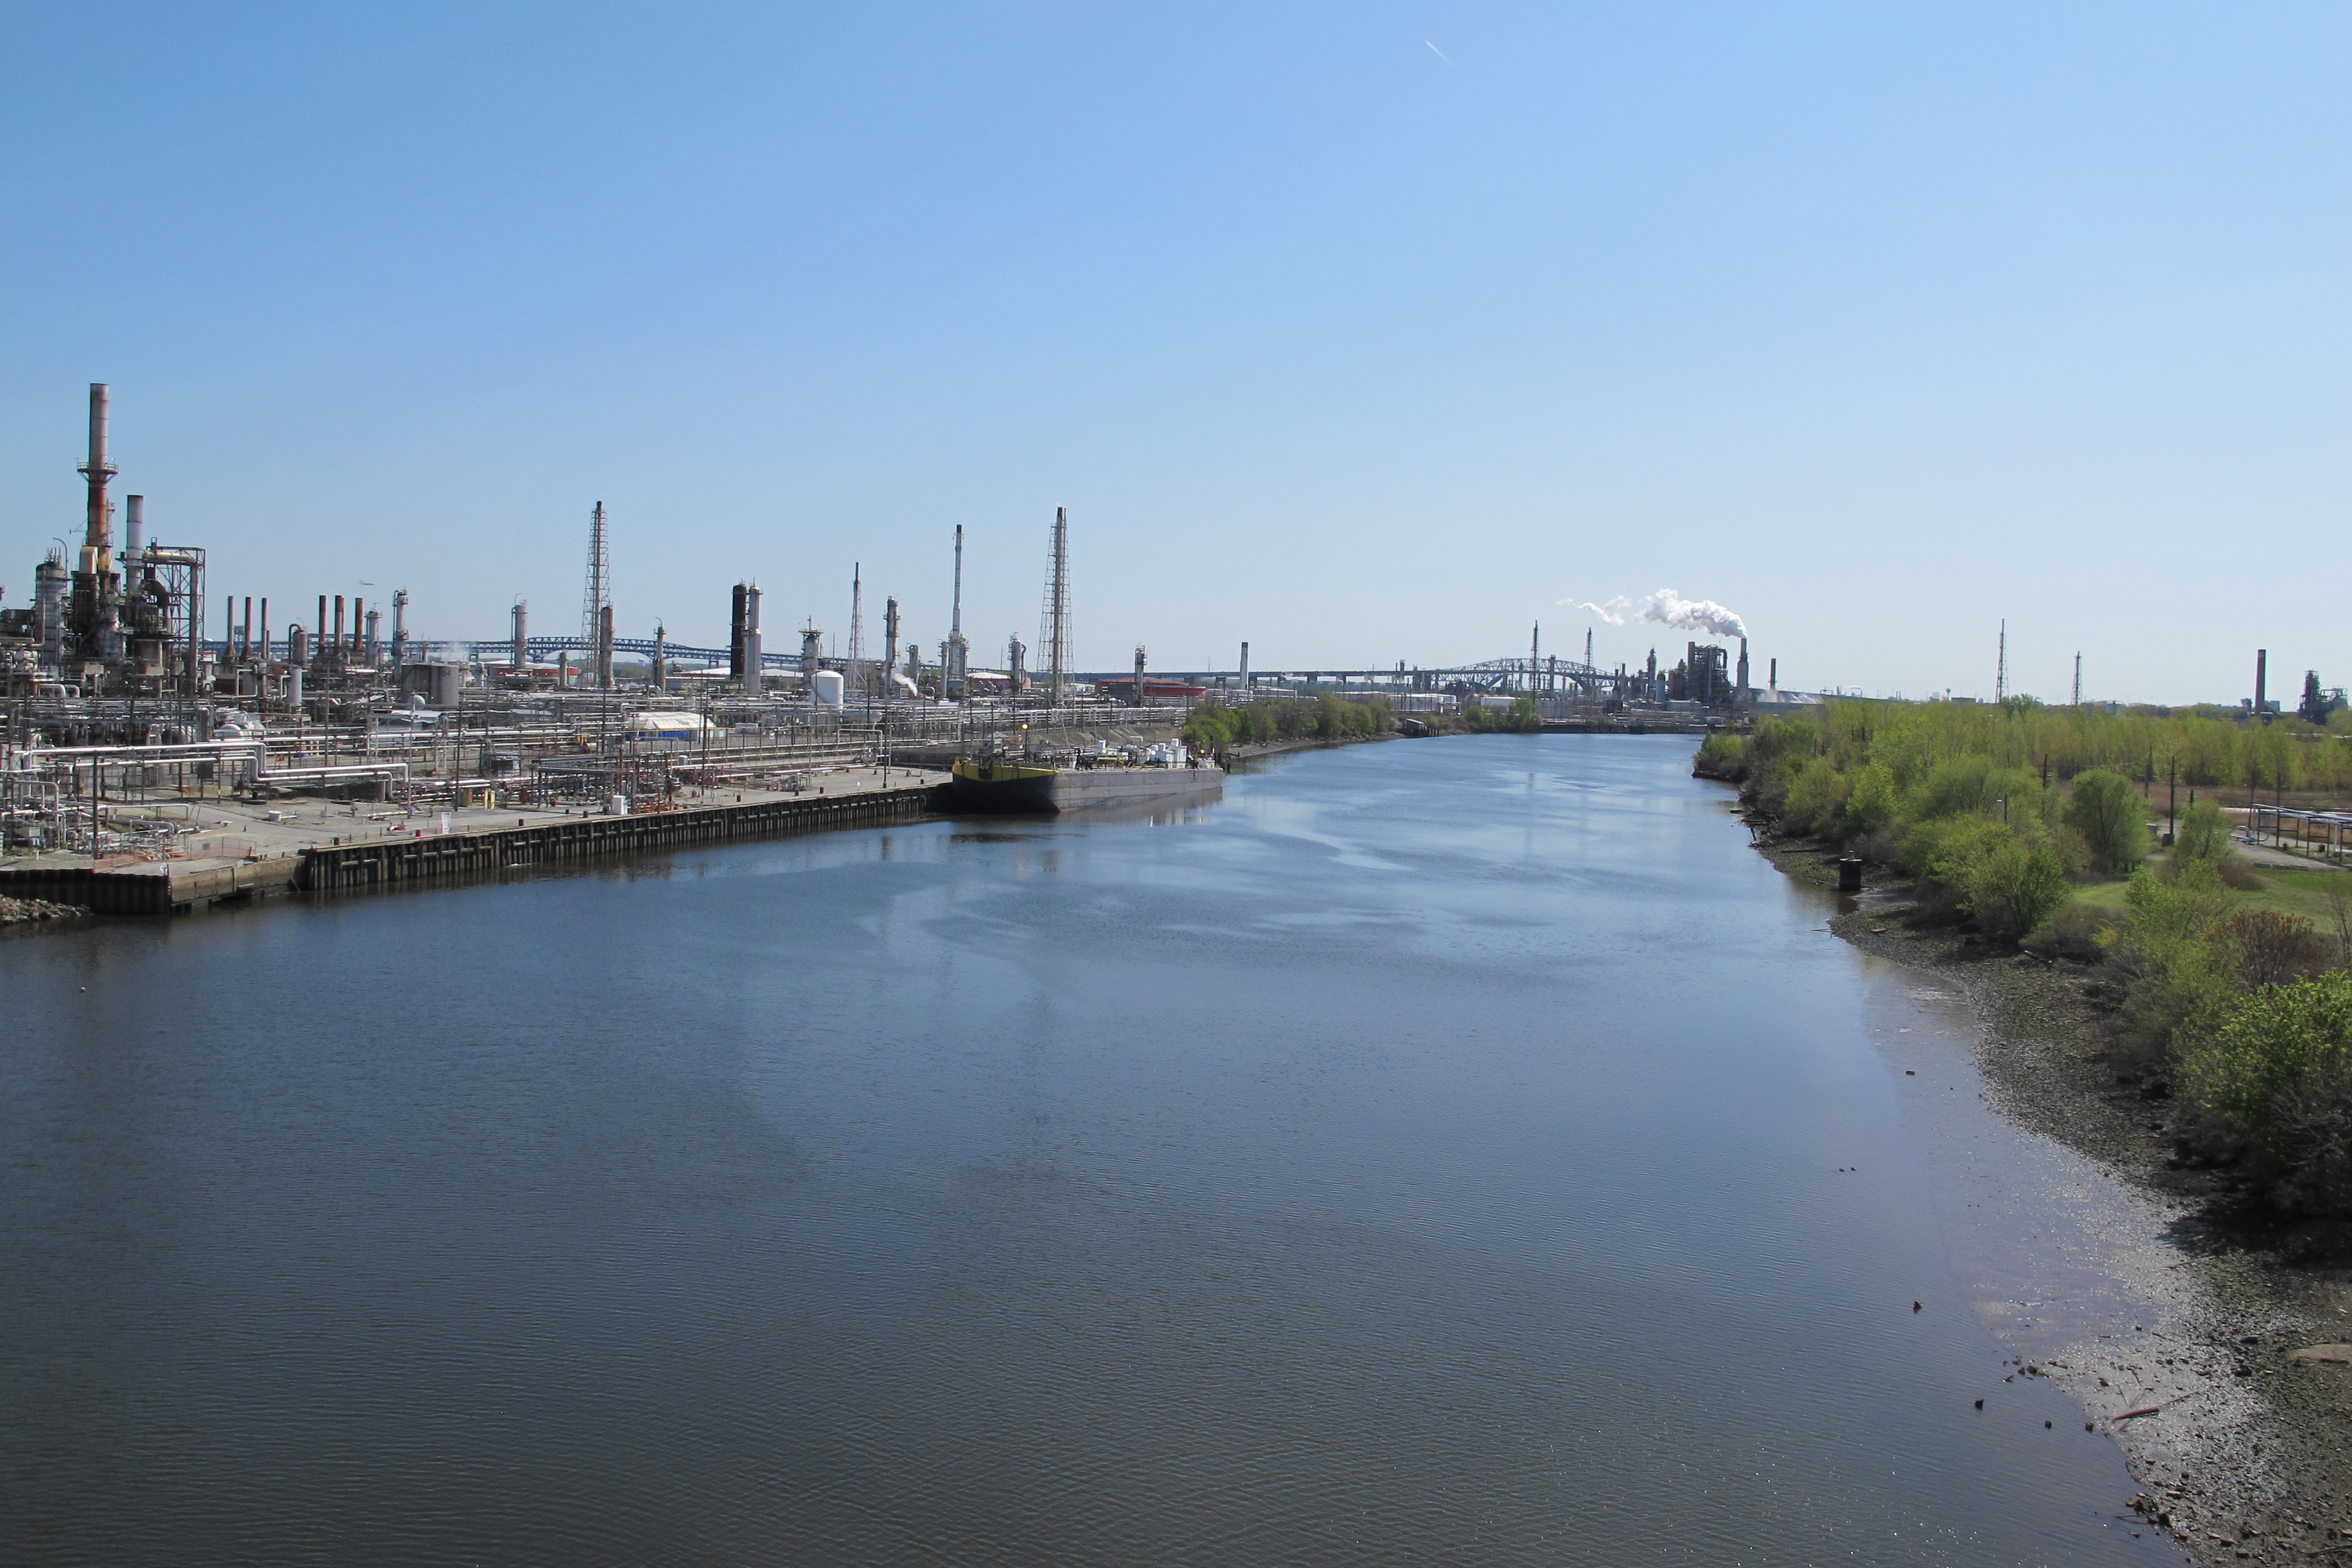 South along the Schuylkill: Part of Sunoco's Philadelphia refinery as seen from the Passyunk Avenue Bridge.